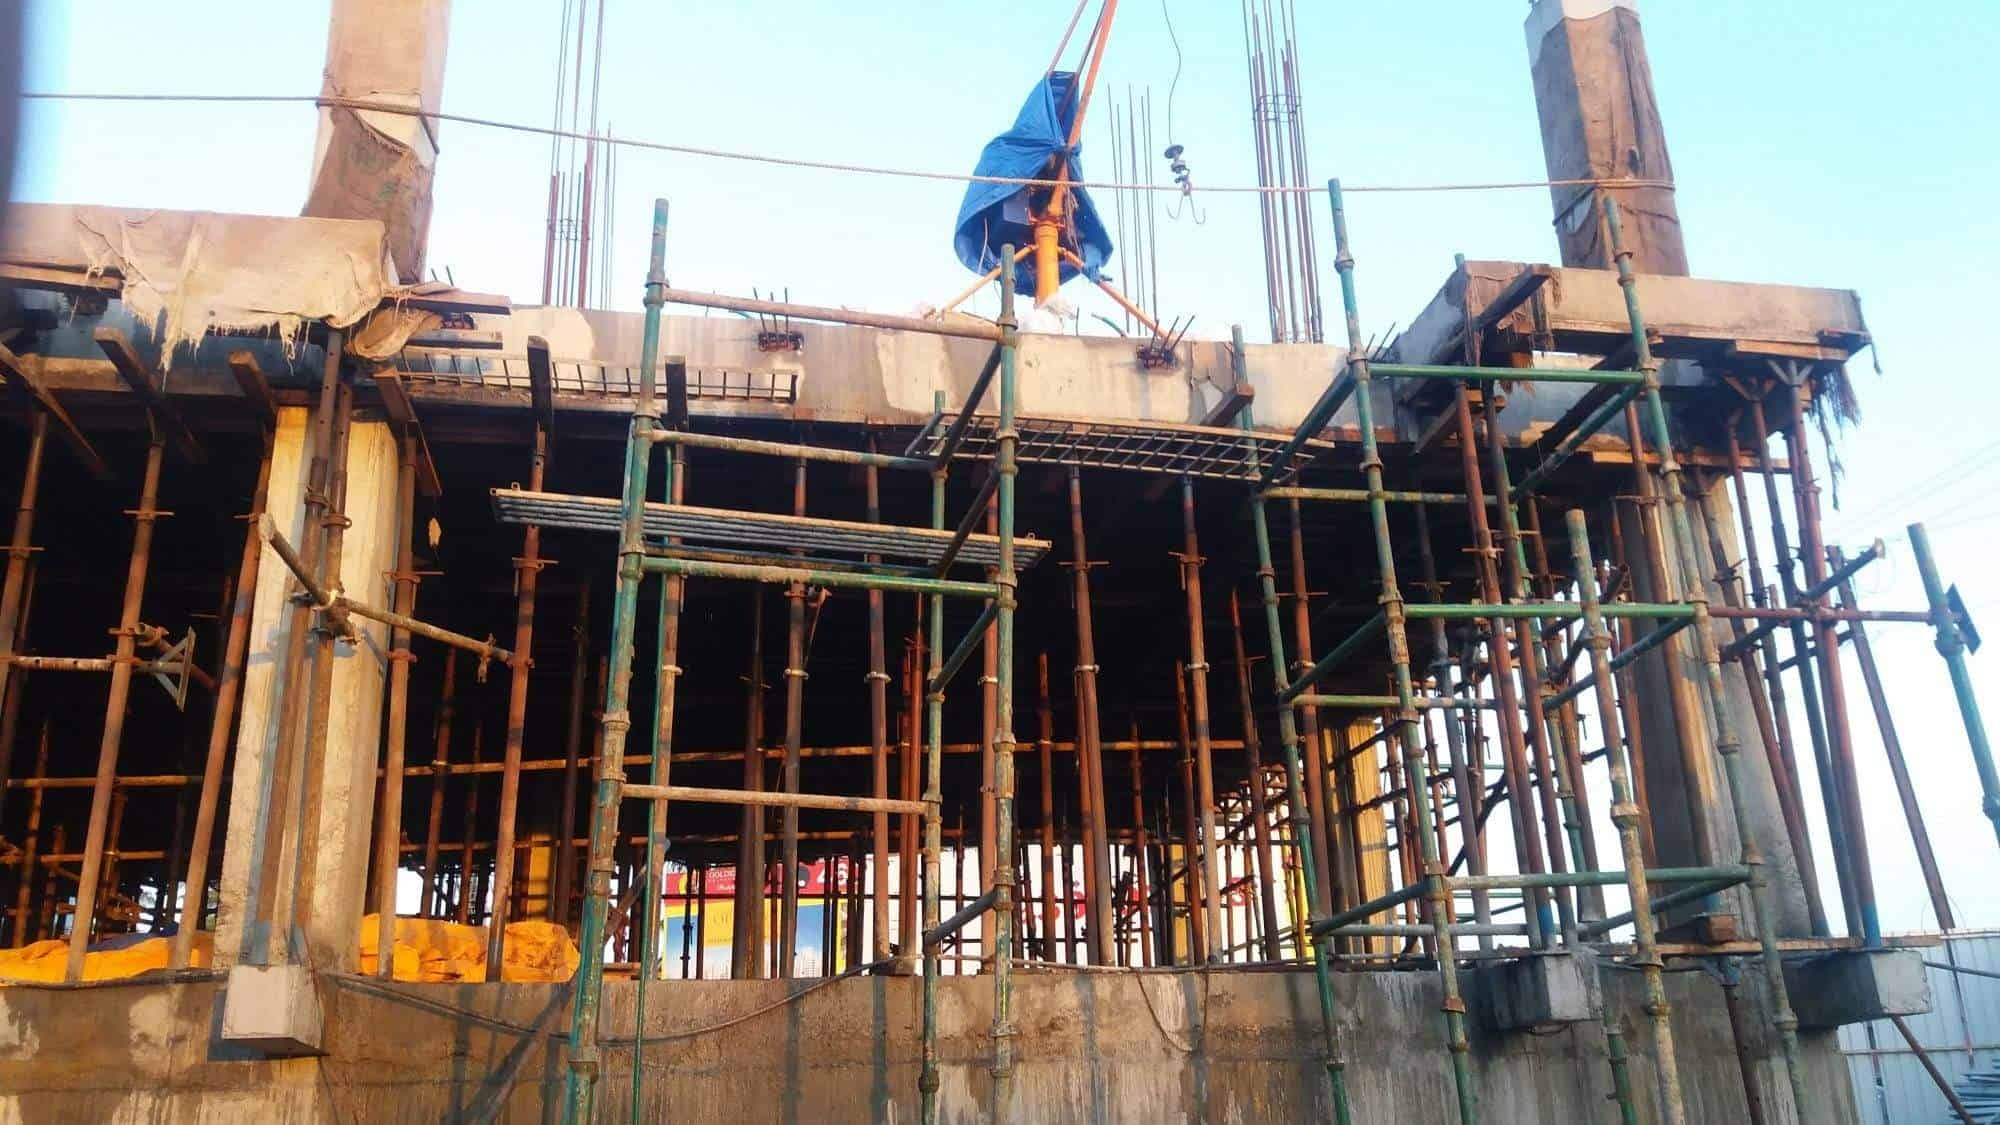 Euro Postech India Pvt Ltd, Kattupakkam - Post Tensioning